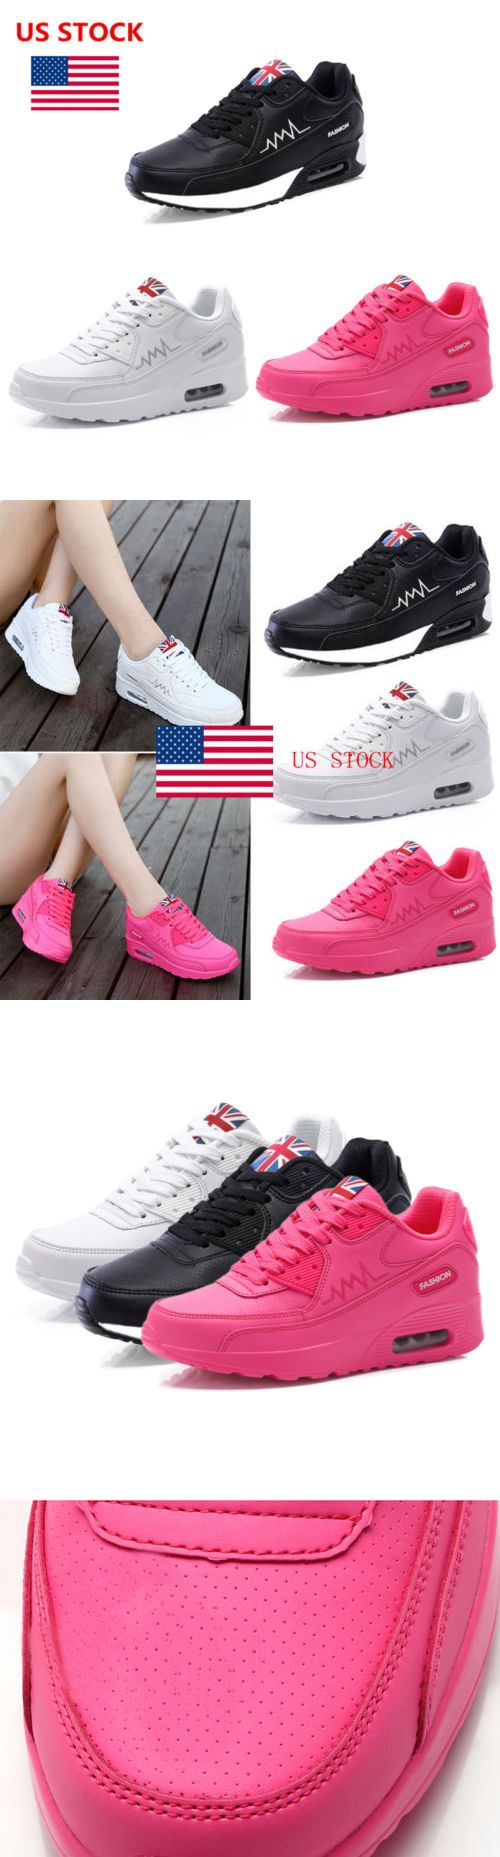 Athletic 95672: Us Womens Ladies Running Trainers Sports Walking Shoes Casual Breathing Sneakers -> BUY IT NOW ONLY: $31.07 on eBay!